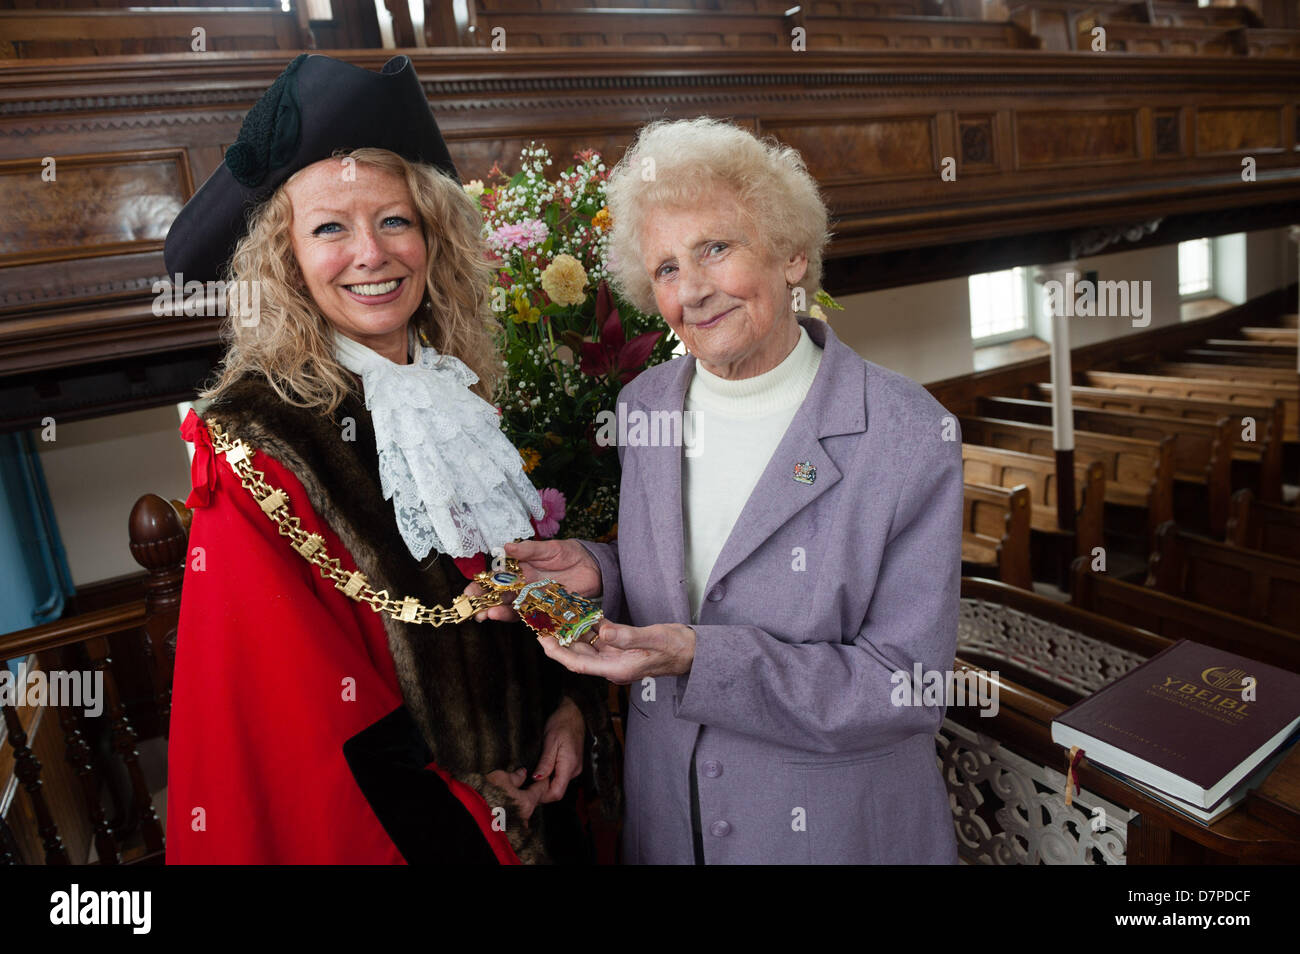 Aberystwyth Wales UK, May 12th 2013, WENDY MORRIS-TWIDDY has this weekend been inaugurated as Mayor of the welsh - Stock Image